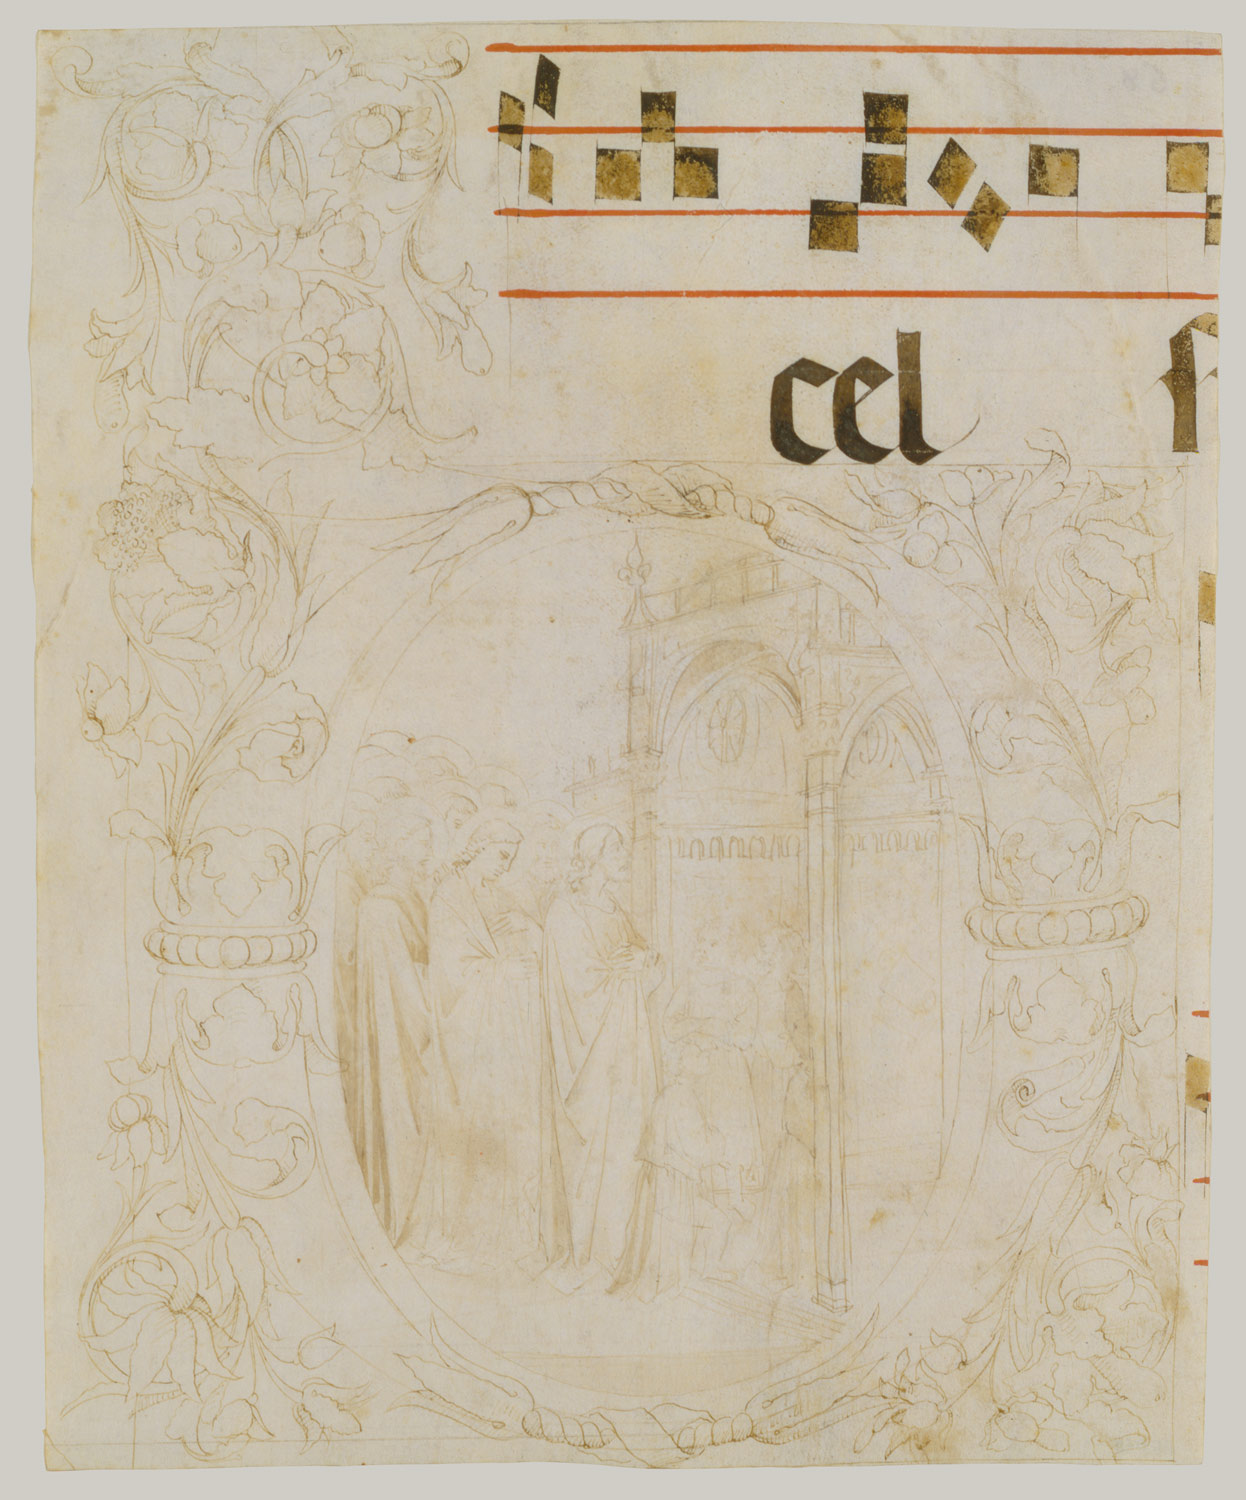 Jesus Entering the Temple in a Letter D